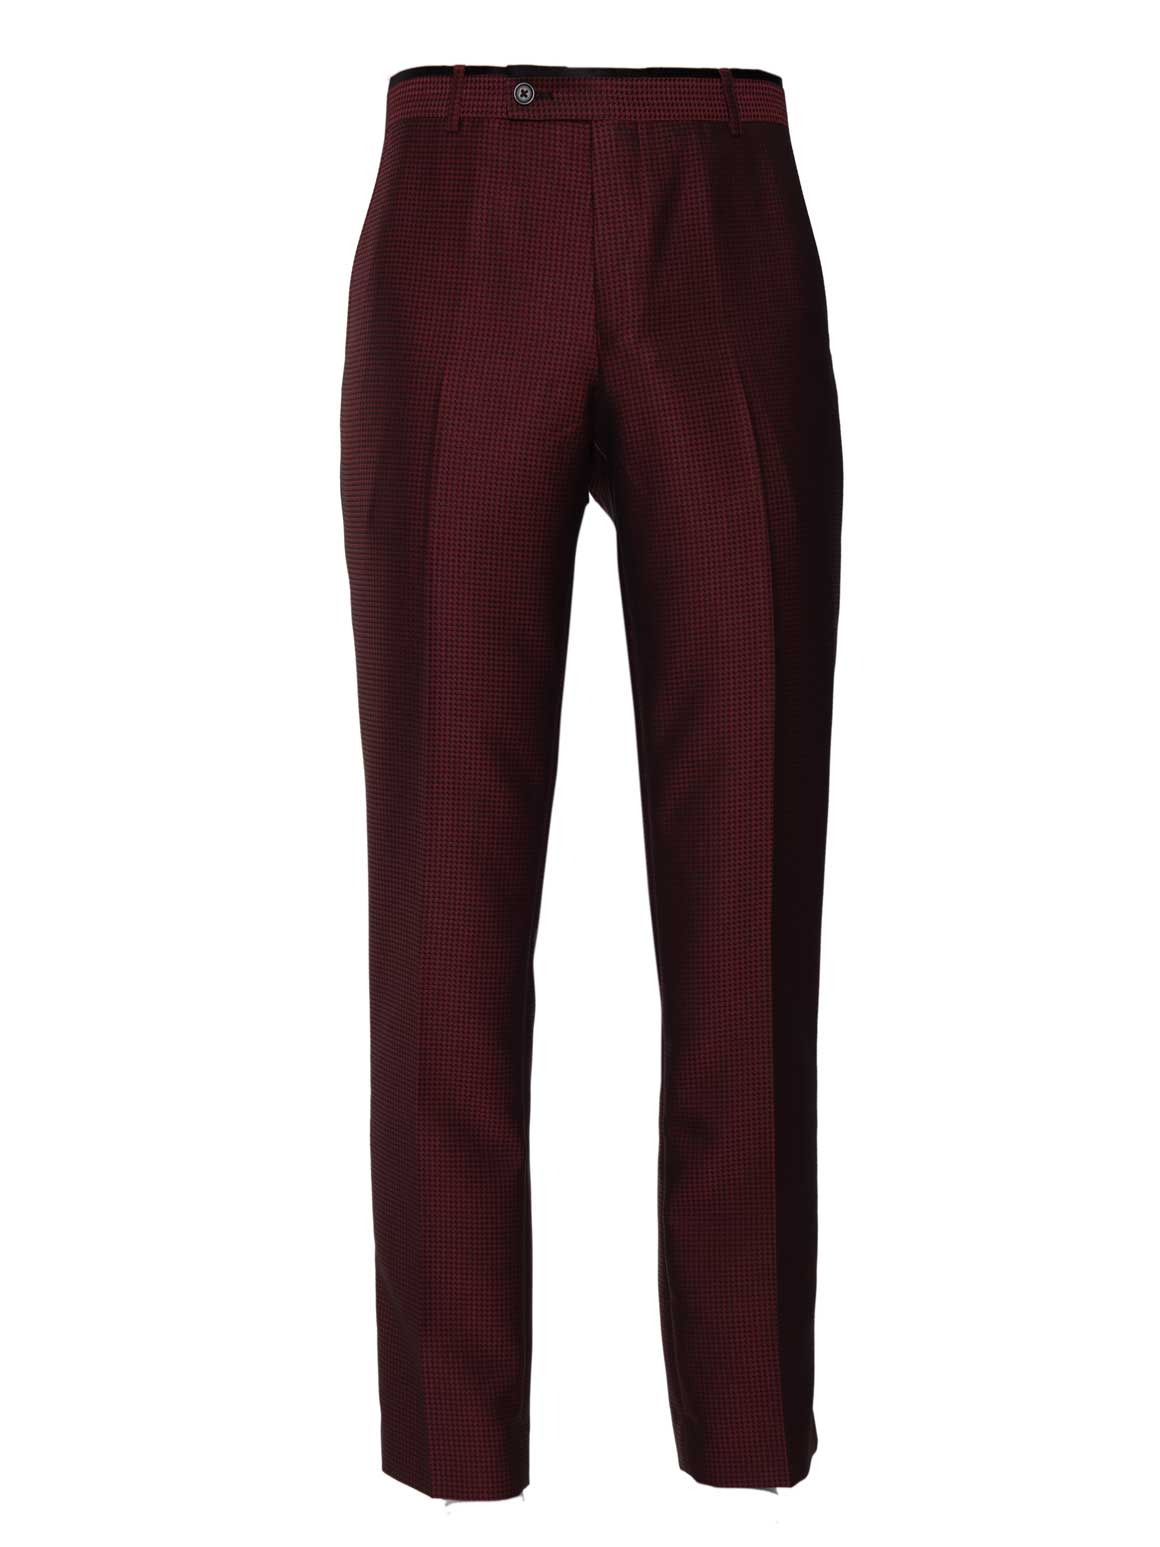 Sloane Tuxedo Pants - Slim - Red & Black Houndstooth